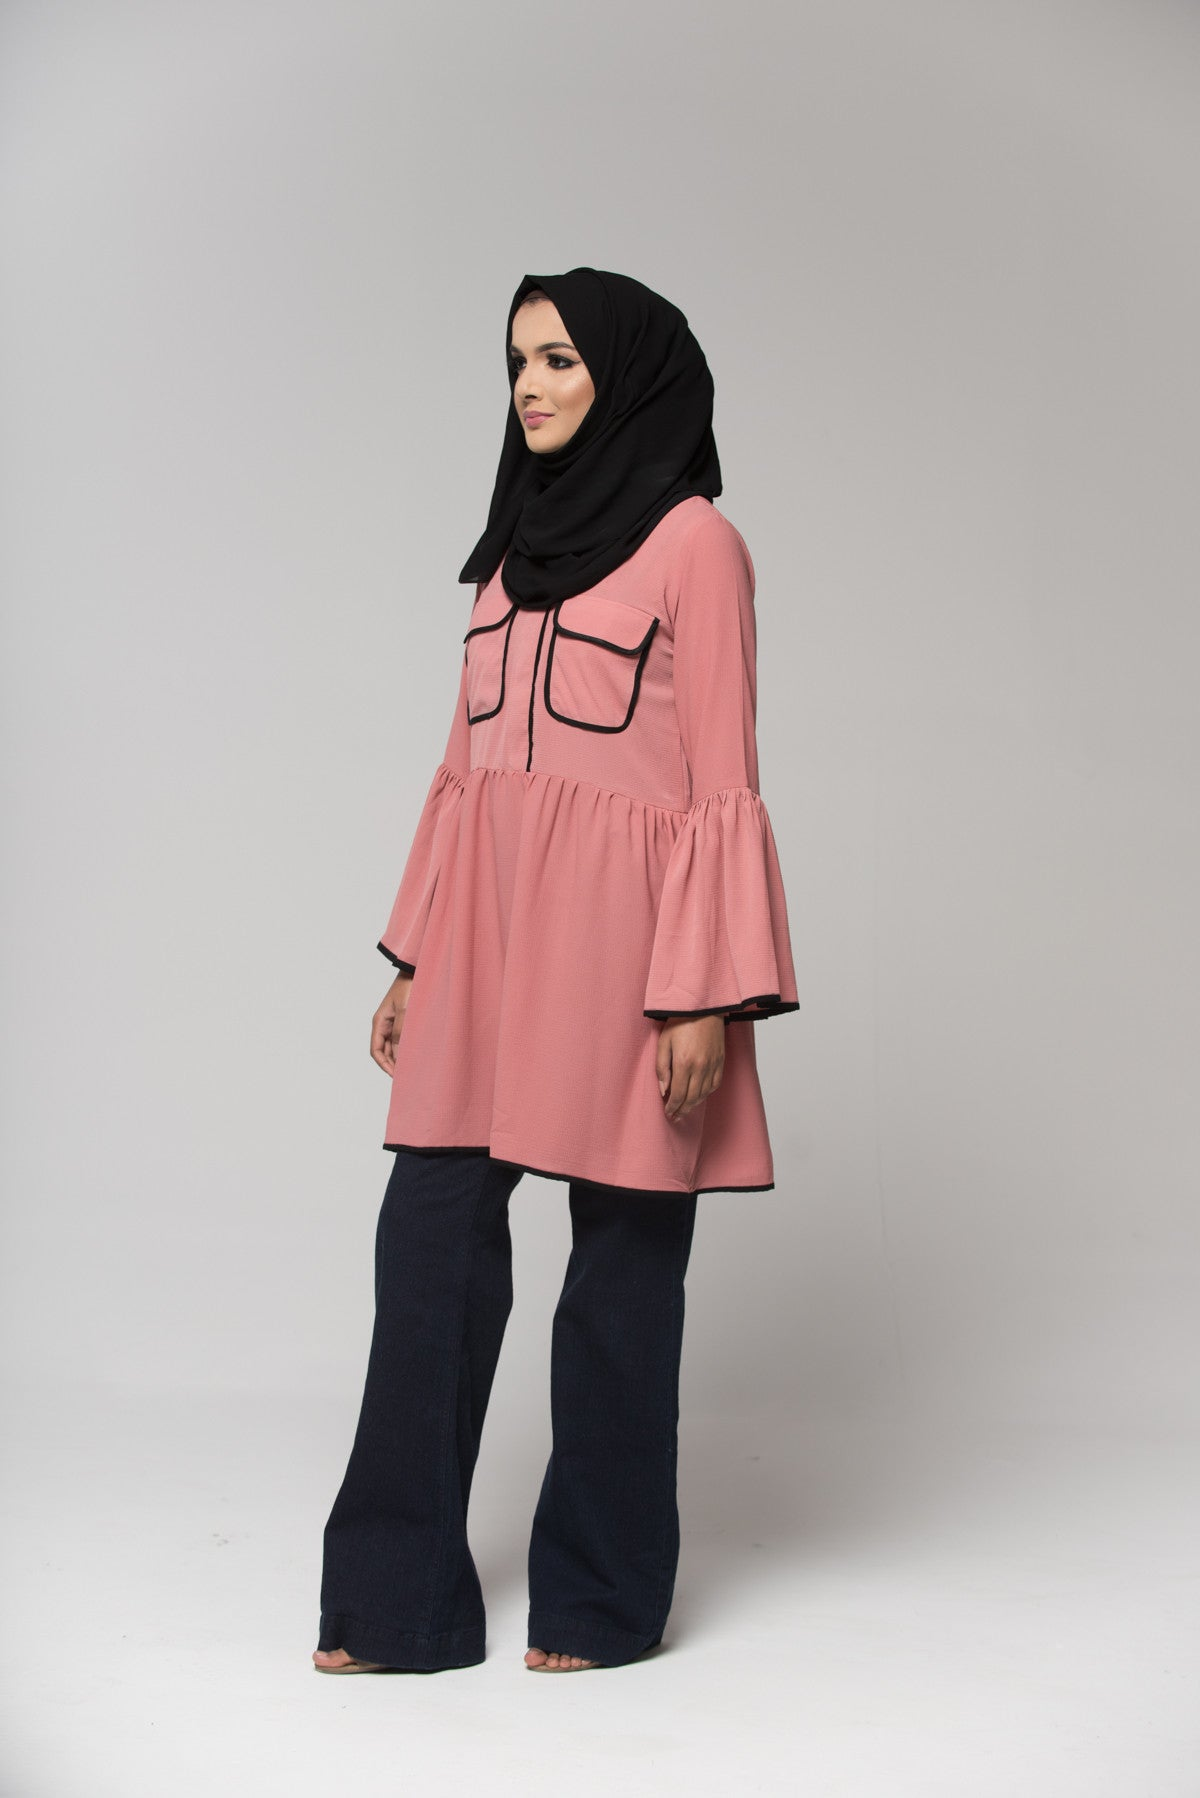 Bell Sleeved Peplum Top